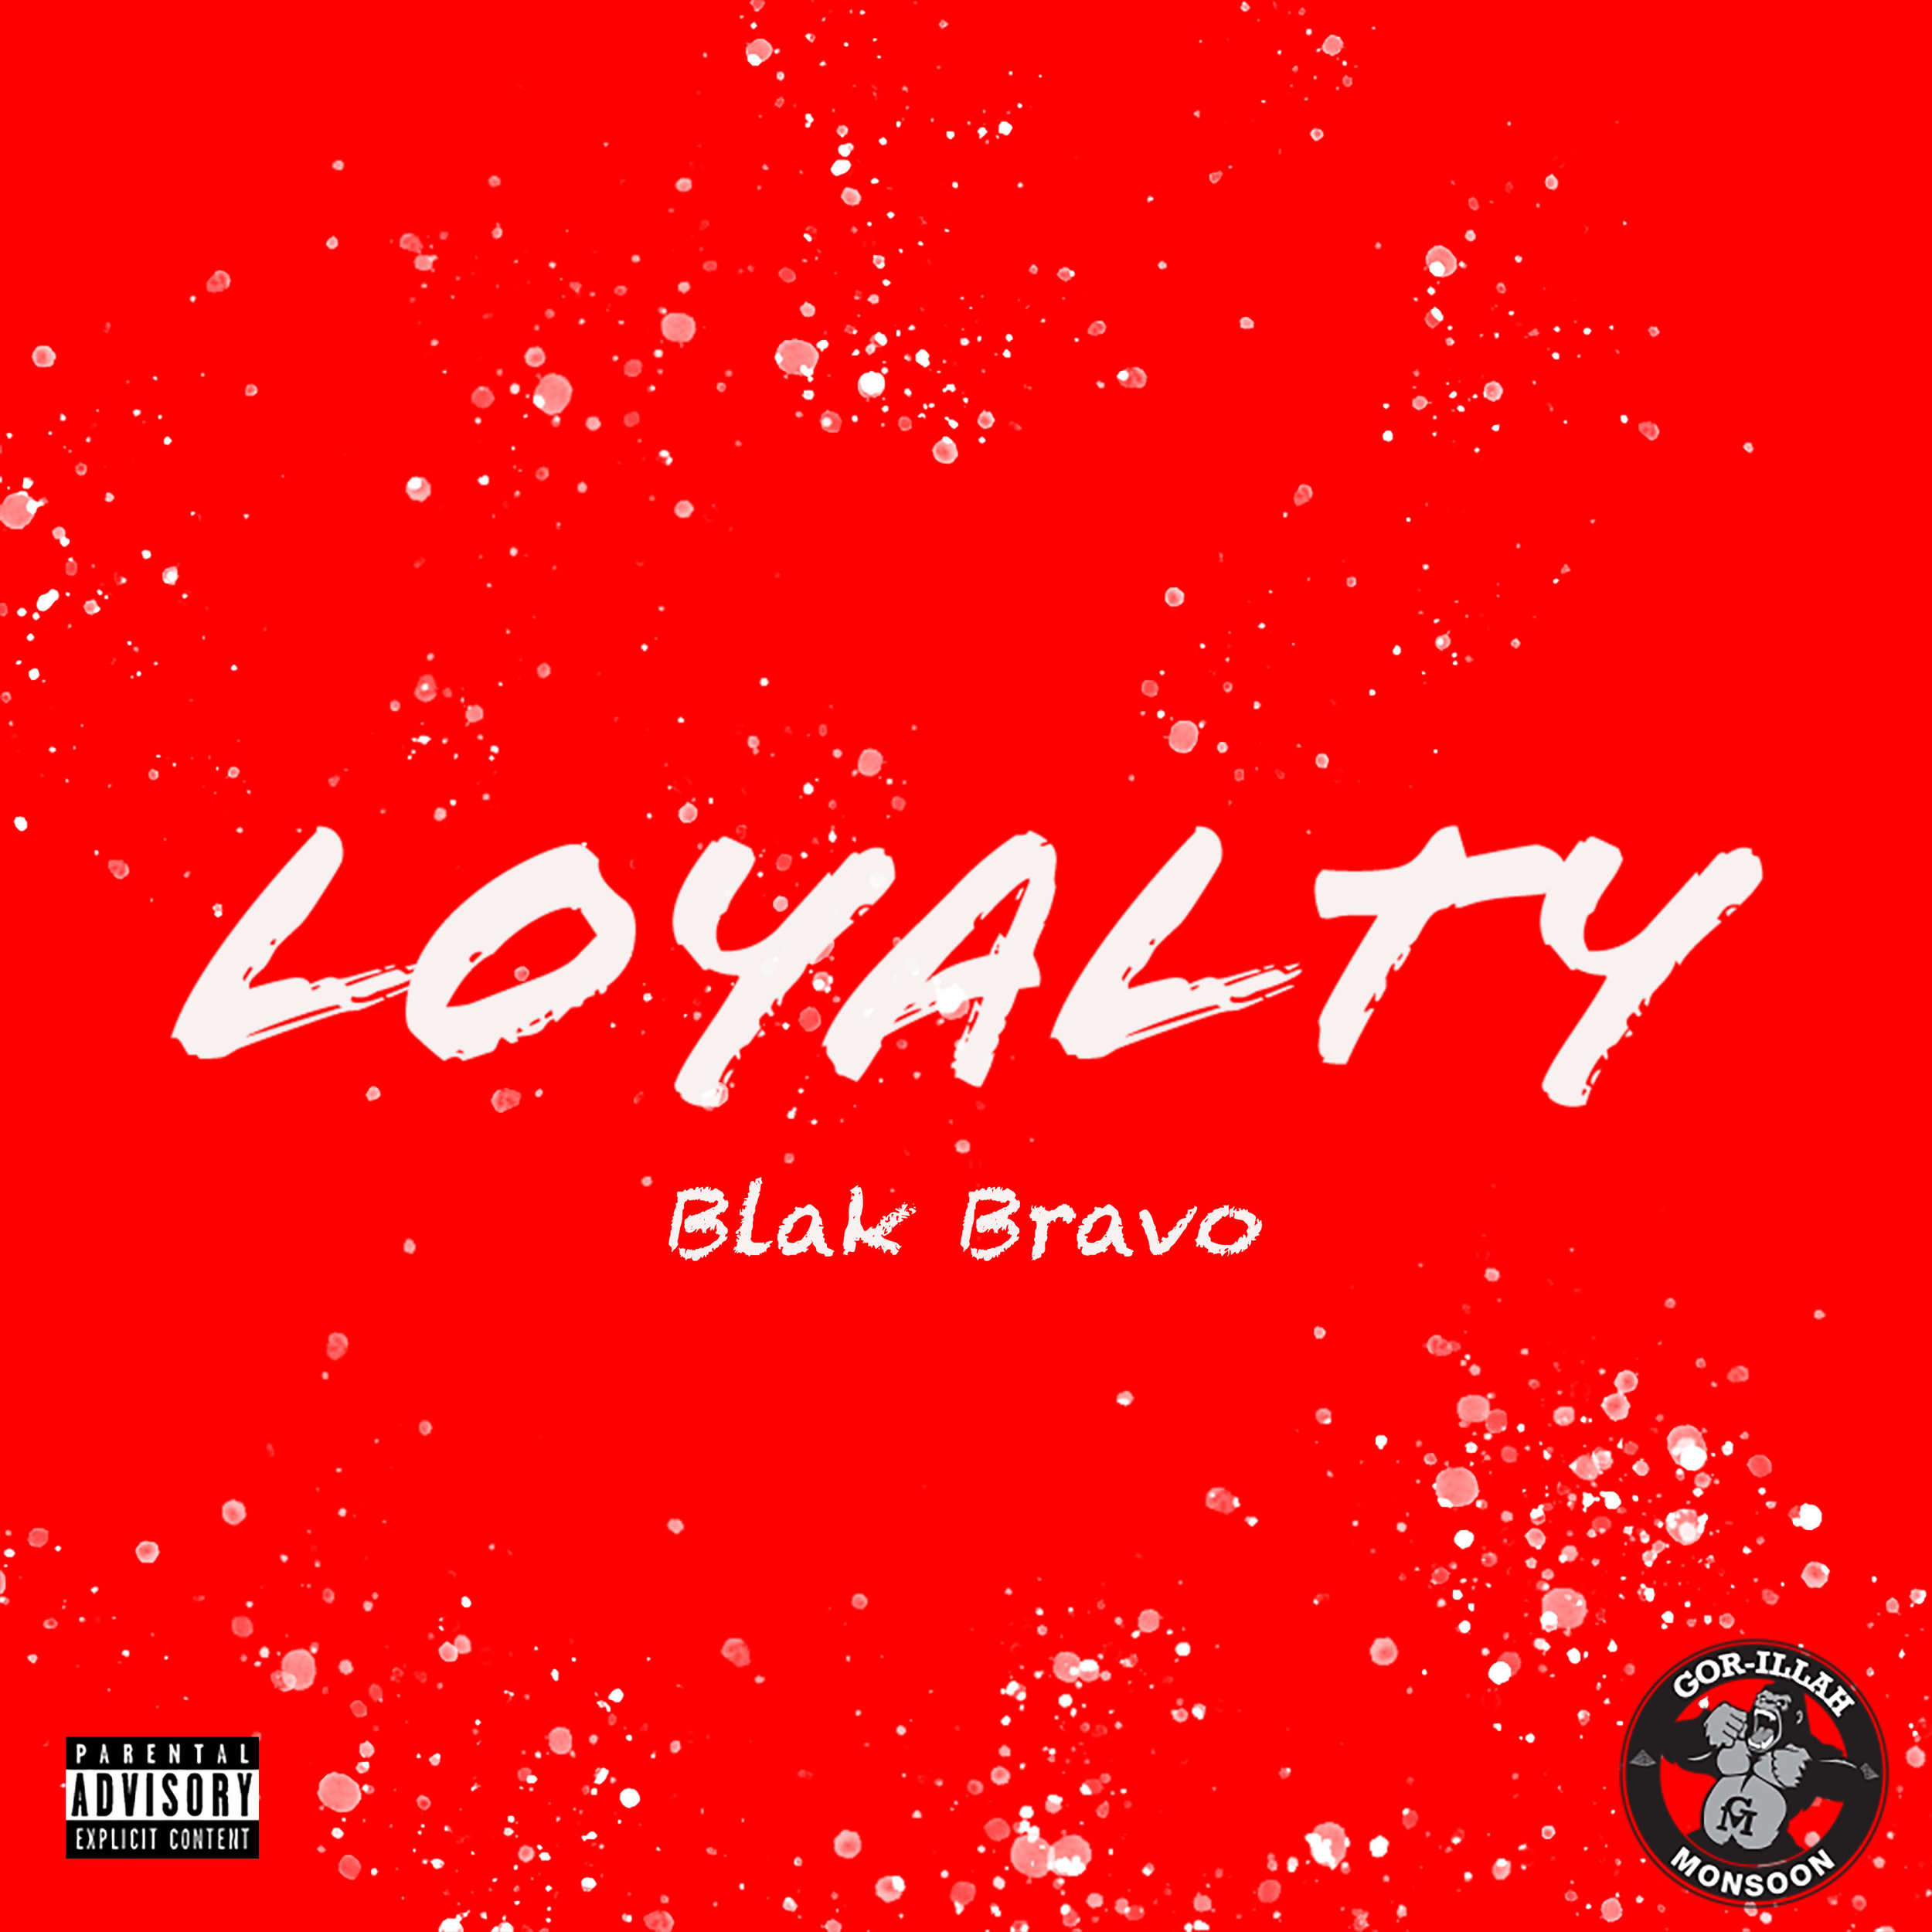 Blak Bravo - loyalty-cover-art-1561298551.jpg